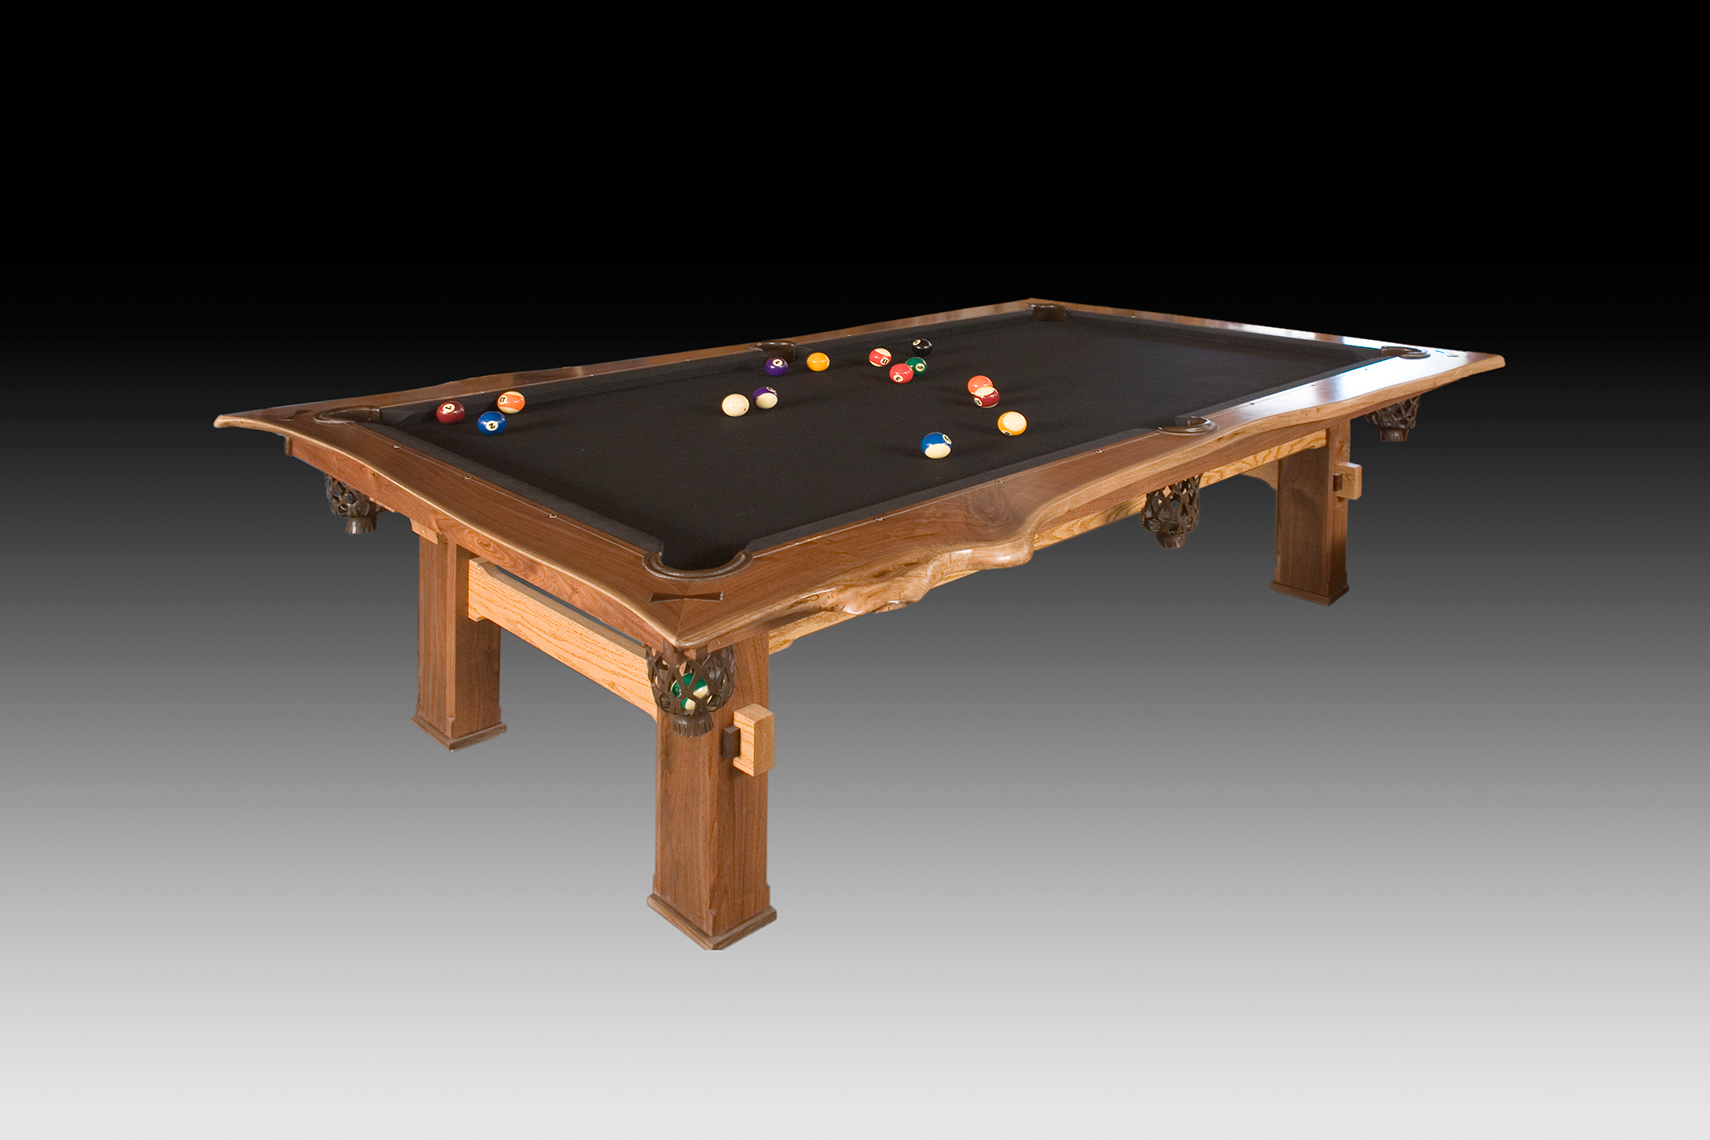 new jersey custom wood furniture-Rustic Walnut Pool Table with Live Edges